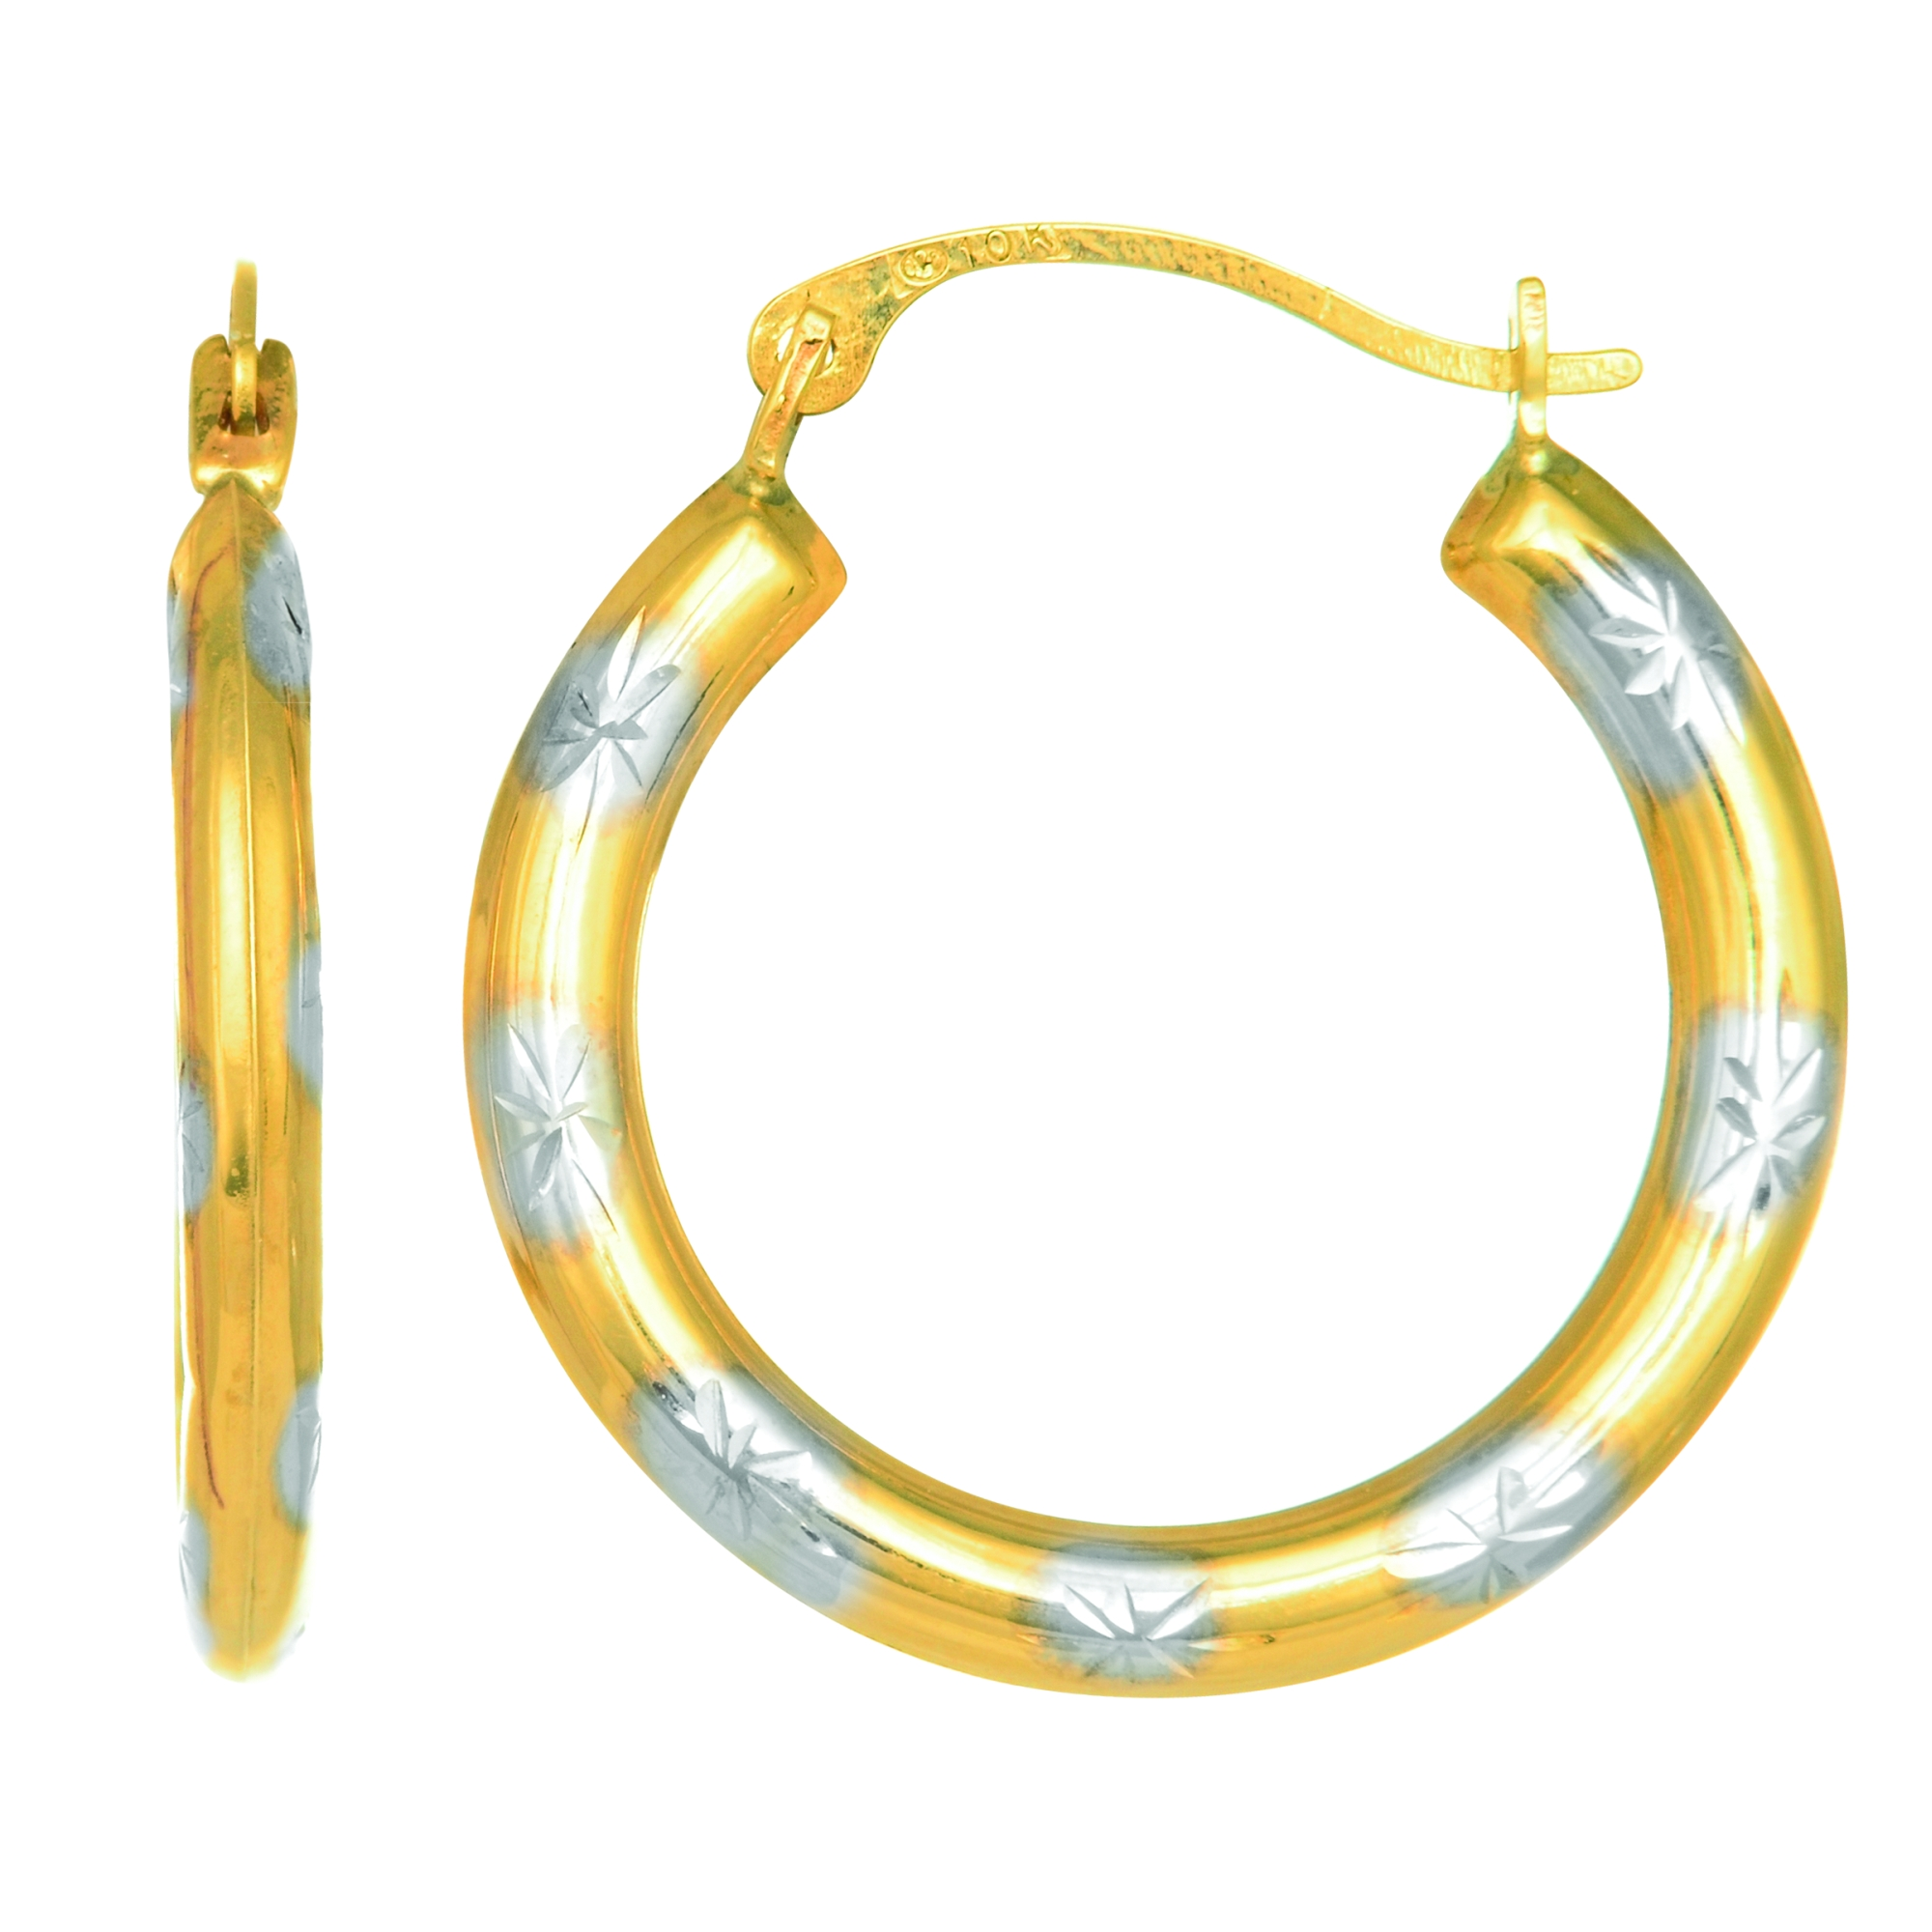 10K Yellow White Gold Two Tone Round Tube Hoop Earring